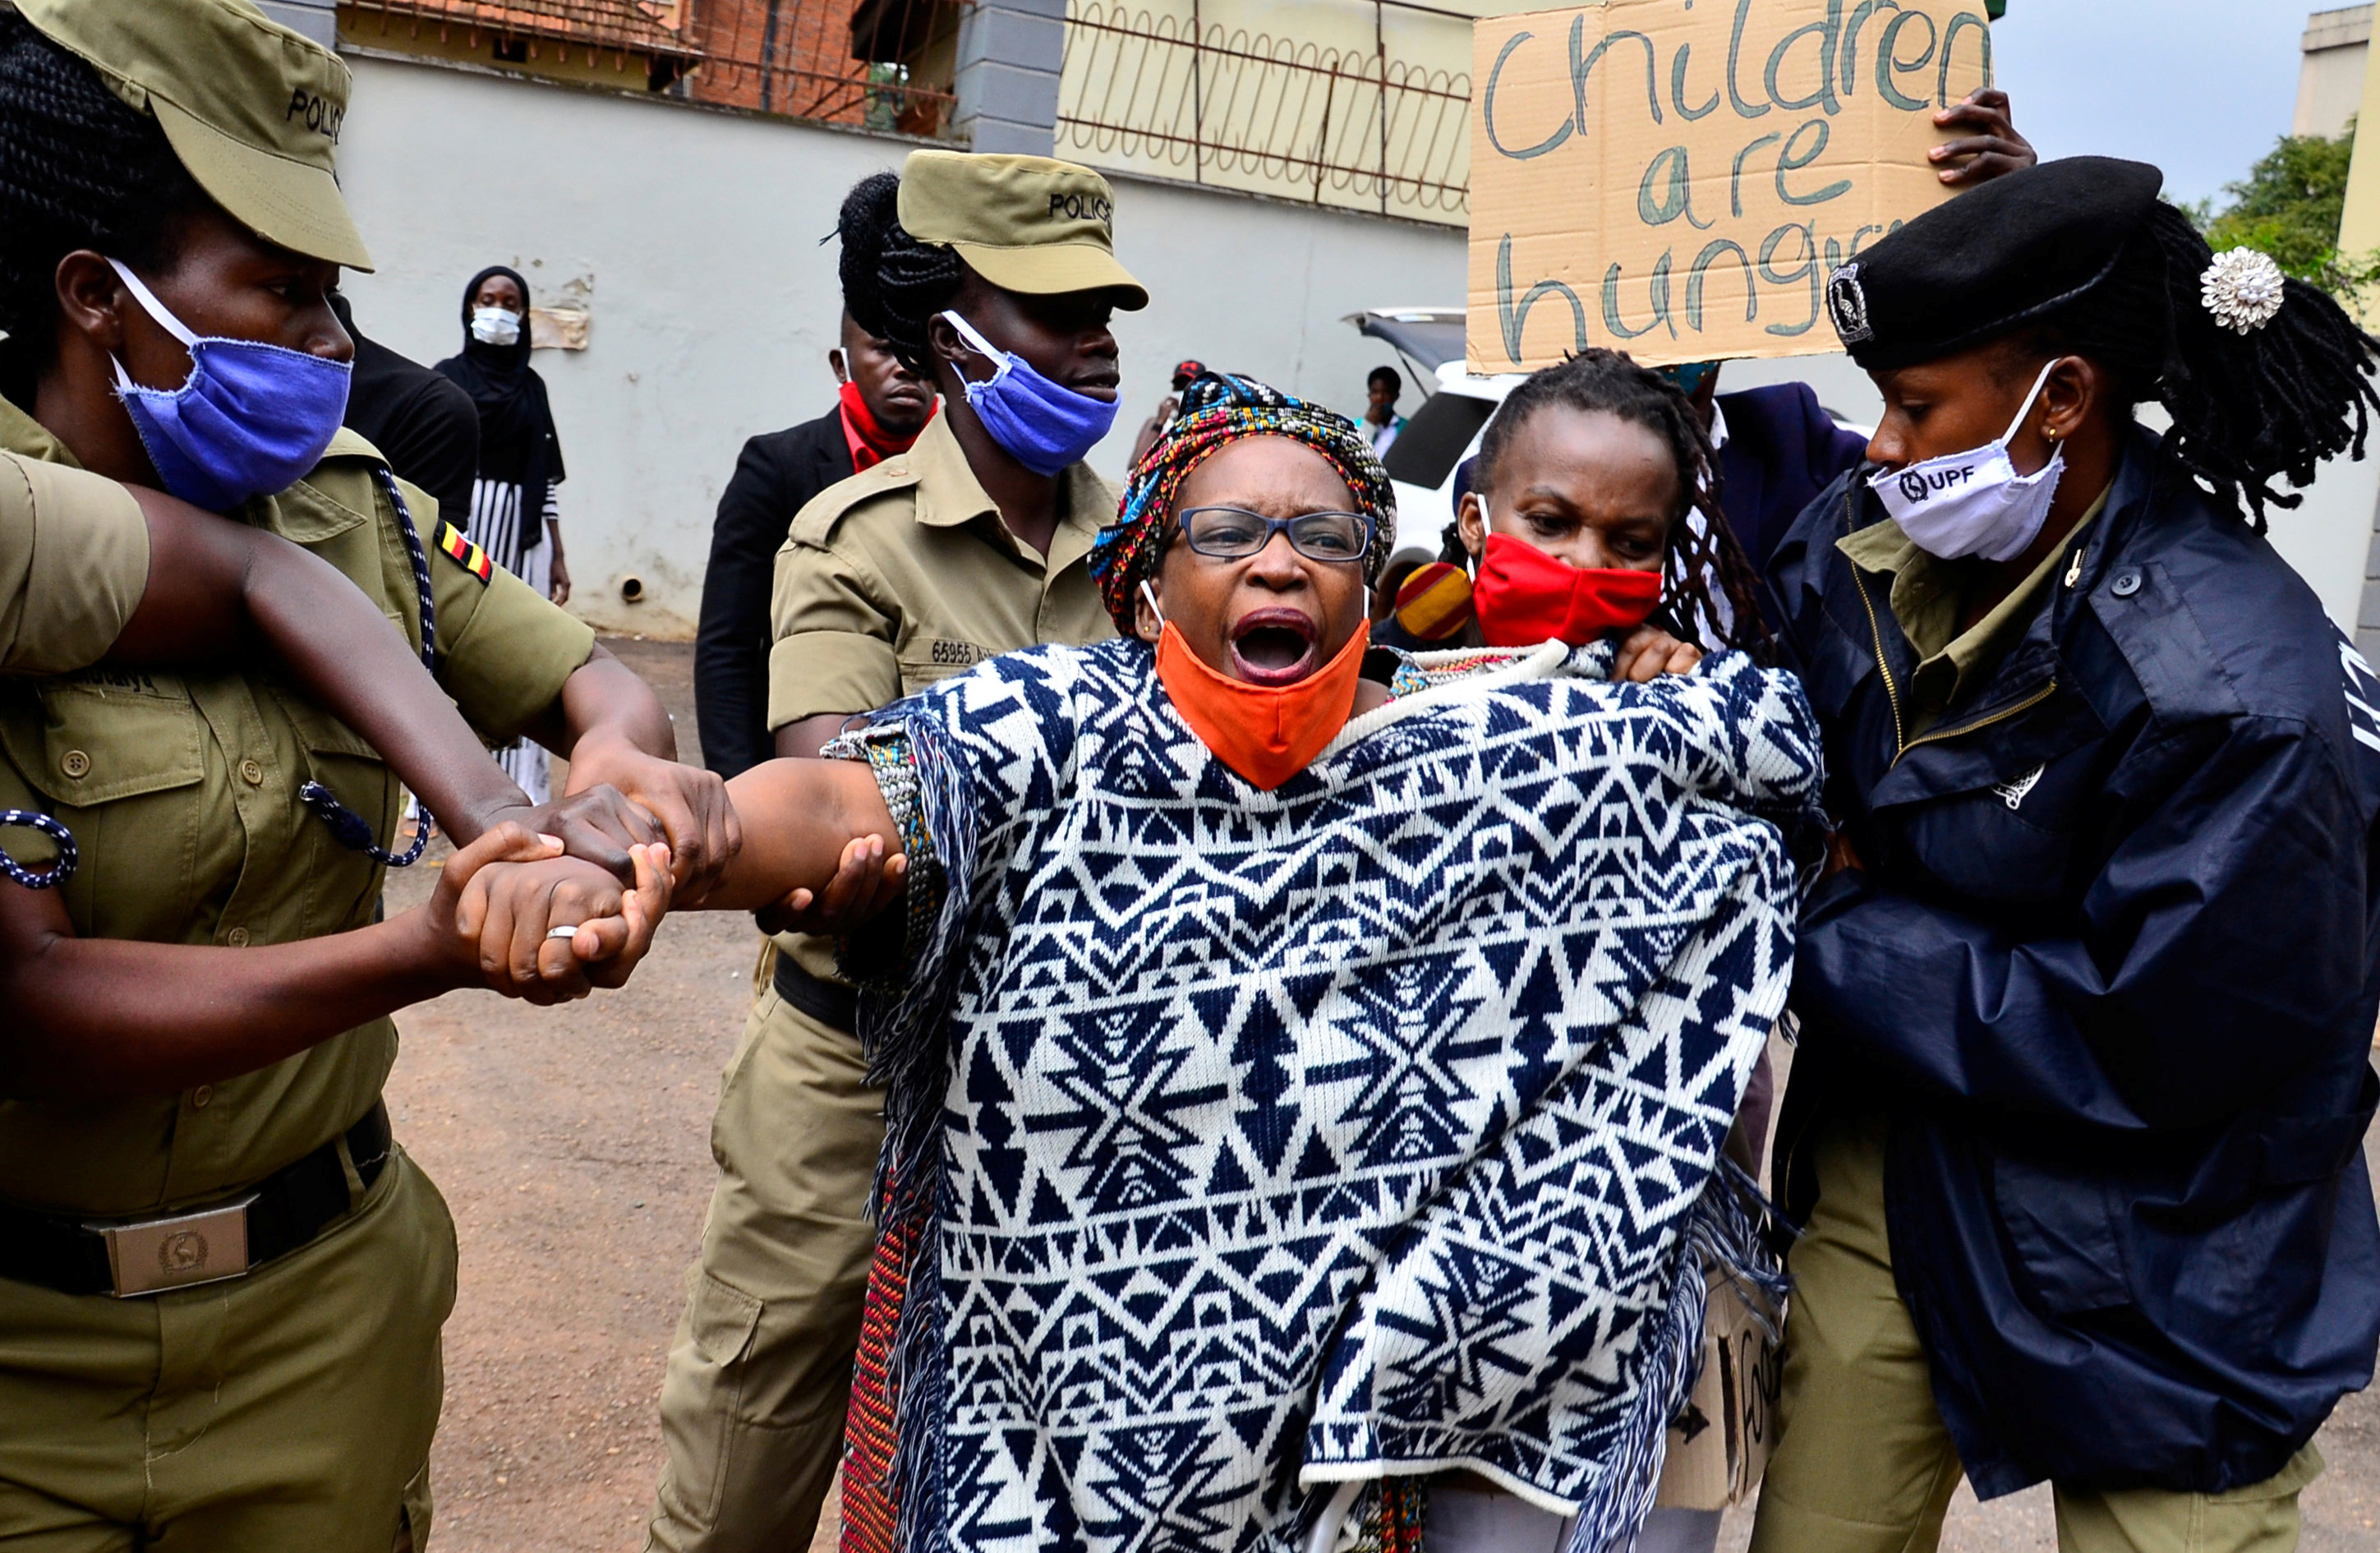 Ugandan police detain academic Stella Nyanzi protesting against the way that government distributes the relief food and the lockdown situation to control the spread of the coronavirus disease (COVID-19) outbreak in Kampala, Uganda. May 18, 2020. REUTERS/Abubaker Lubowa